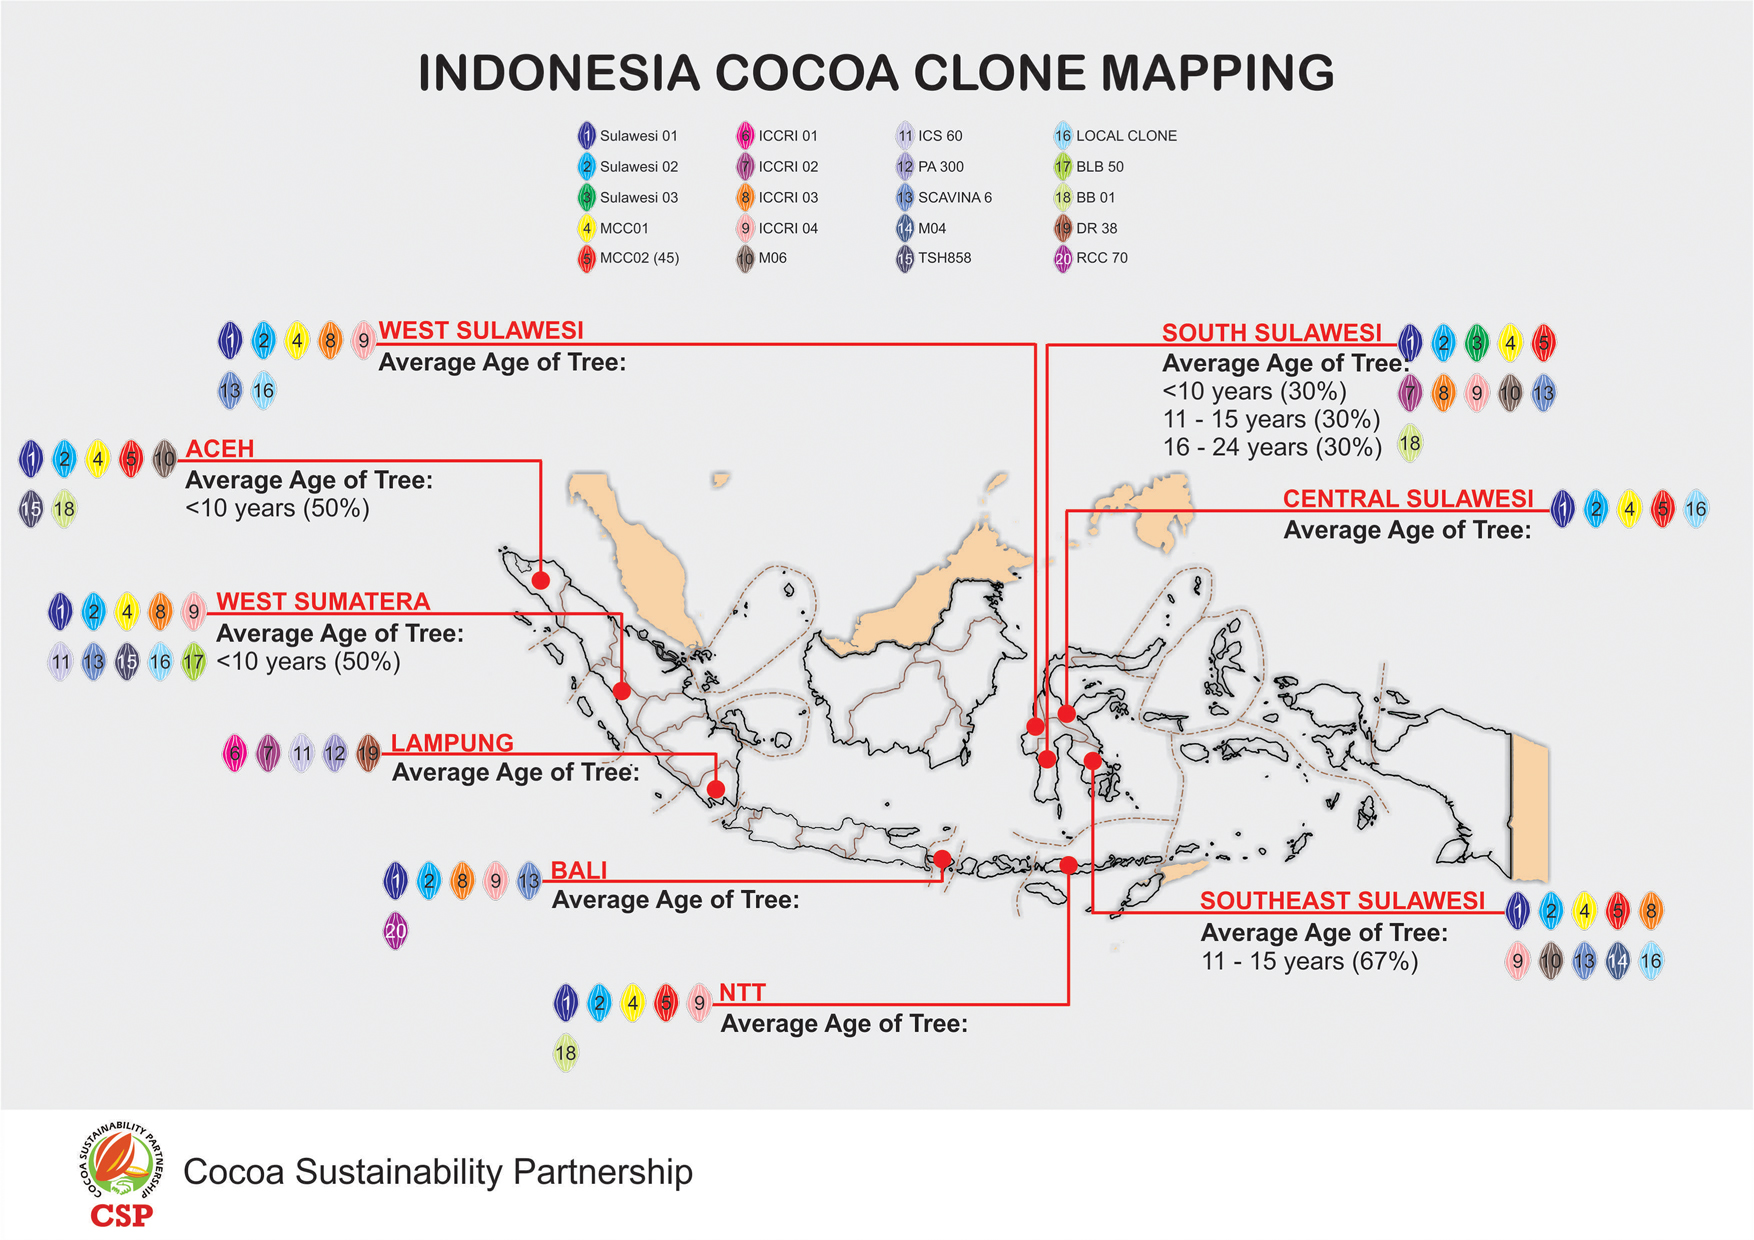 General Distribution of Cocoa Clones in Indonesia